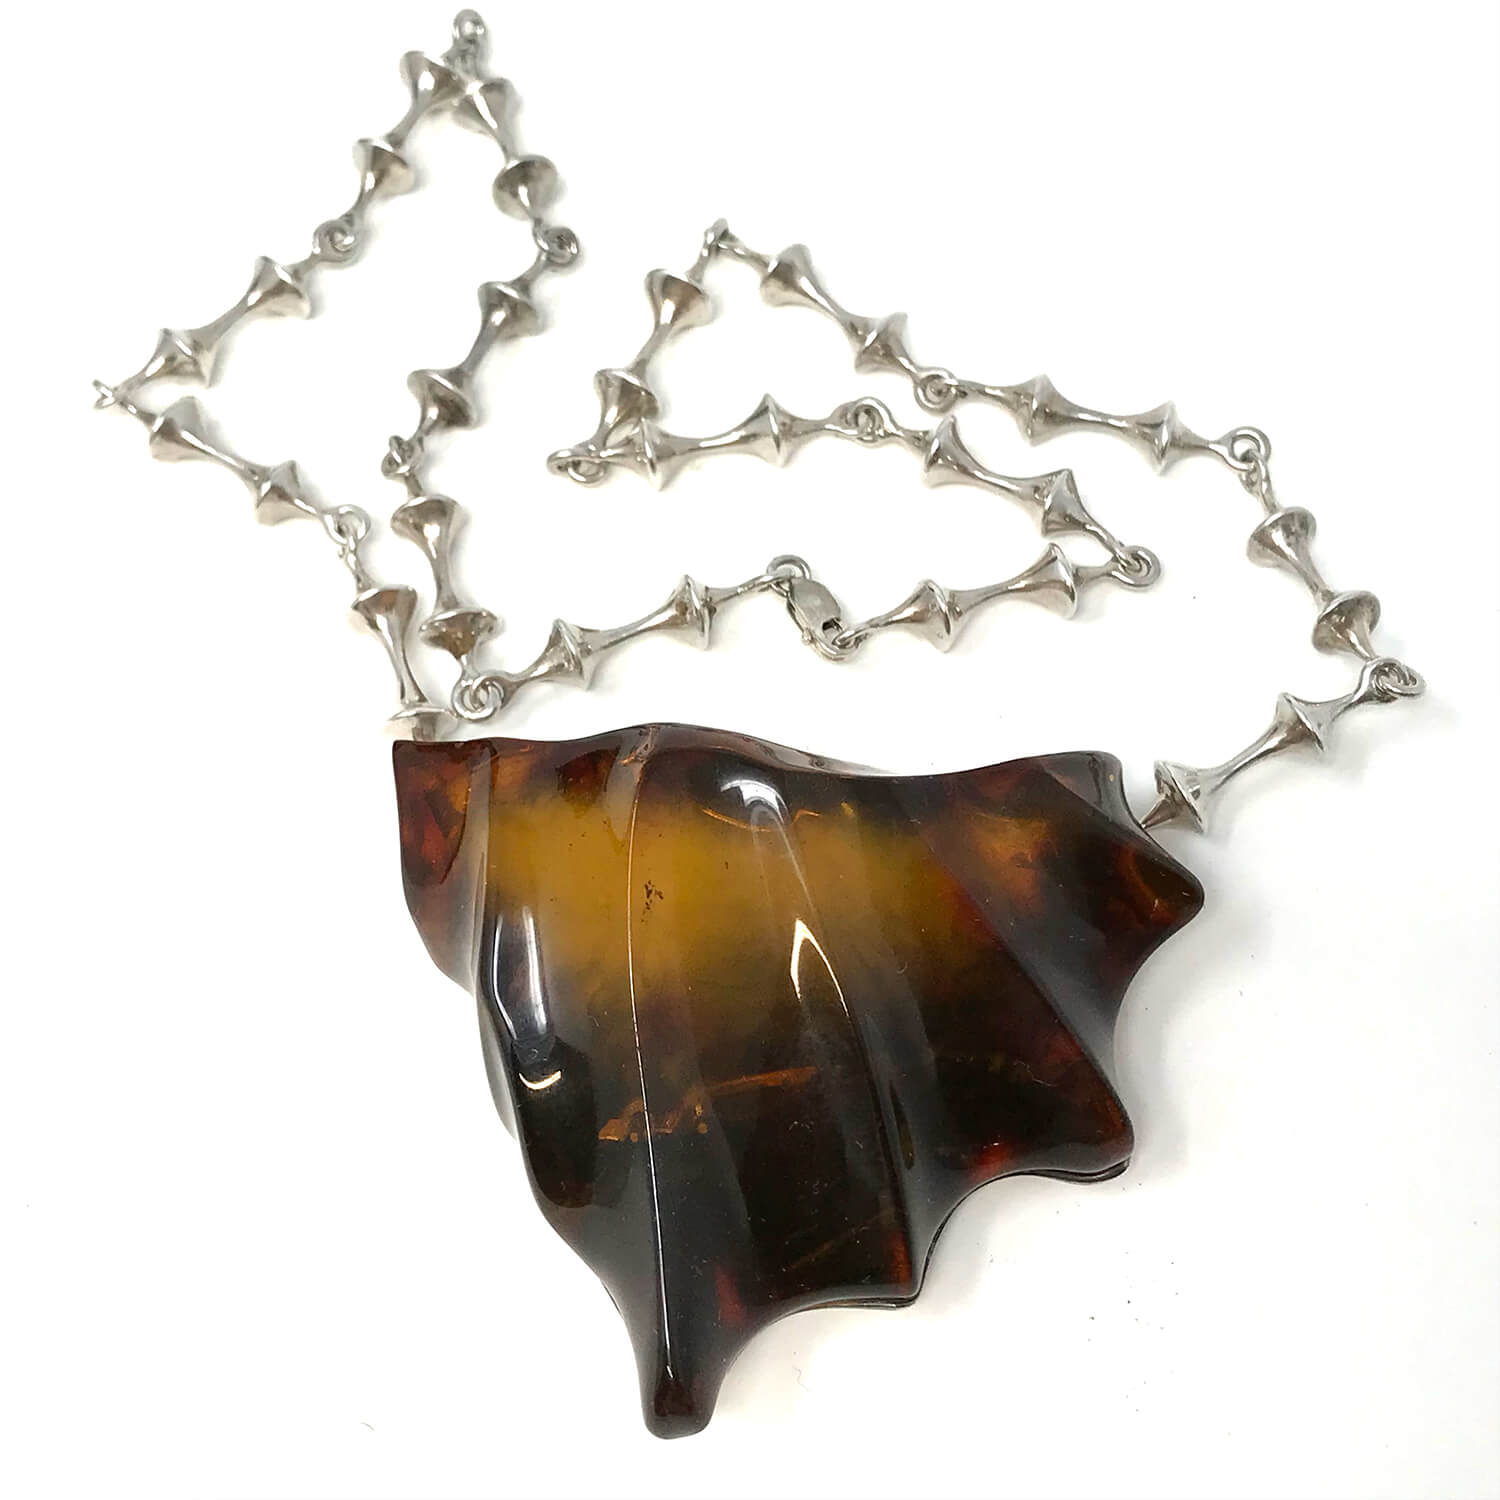 Vintage Silver & Baltic Amber Necklace